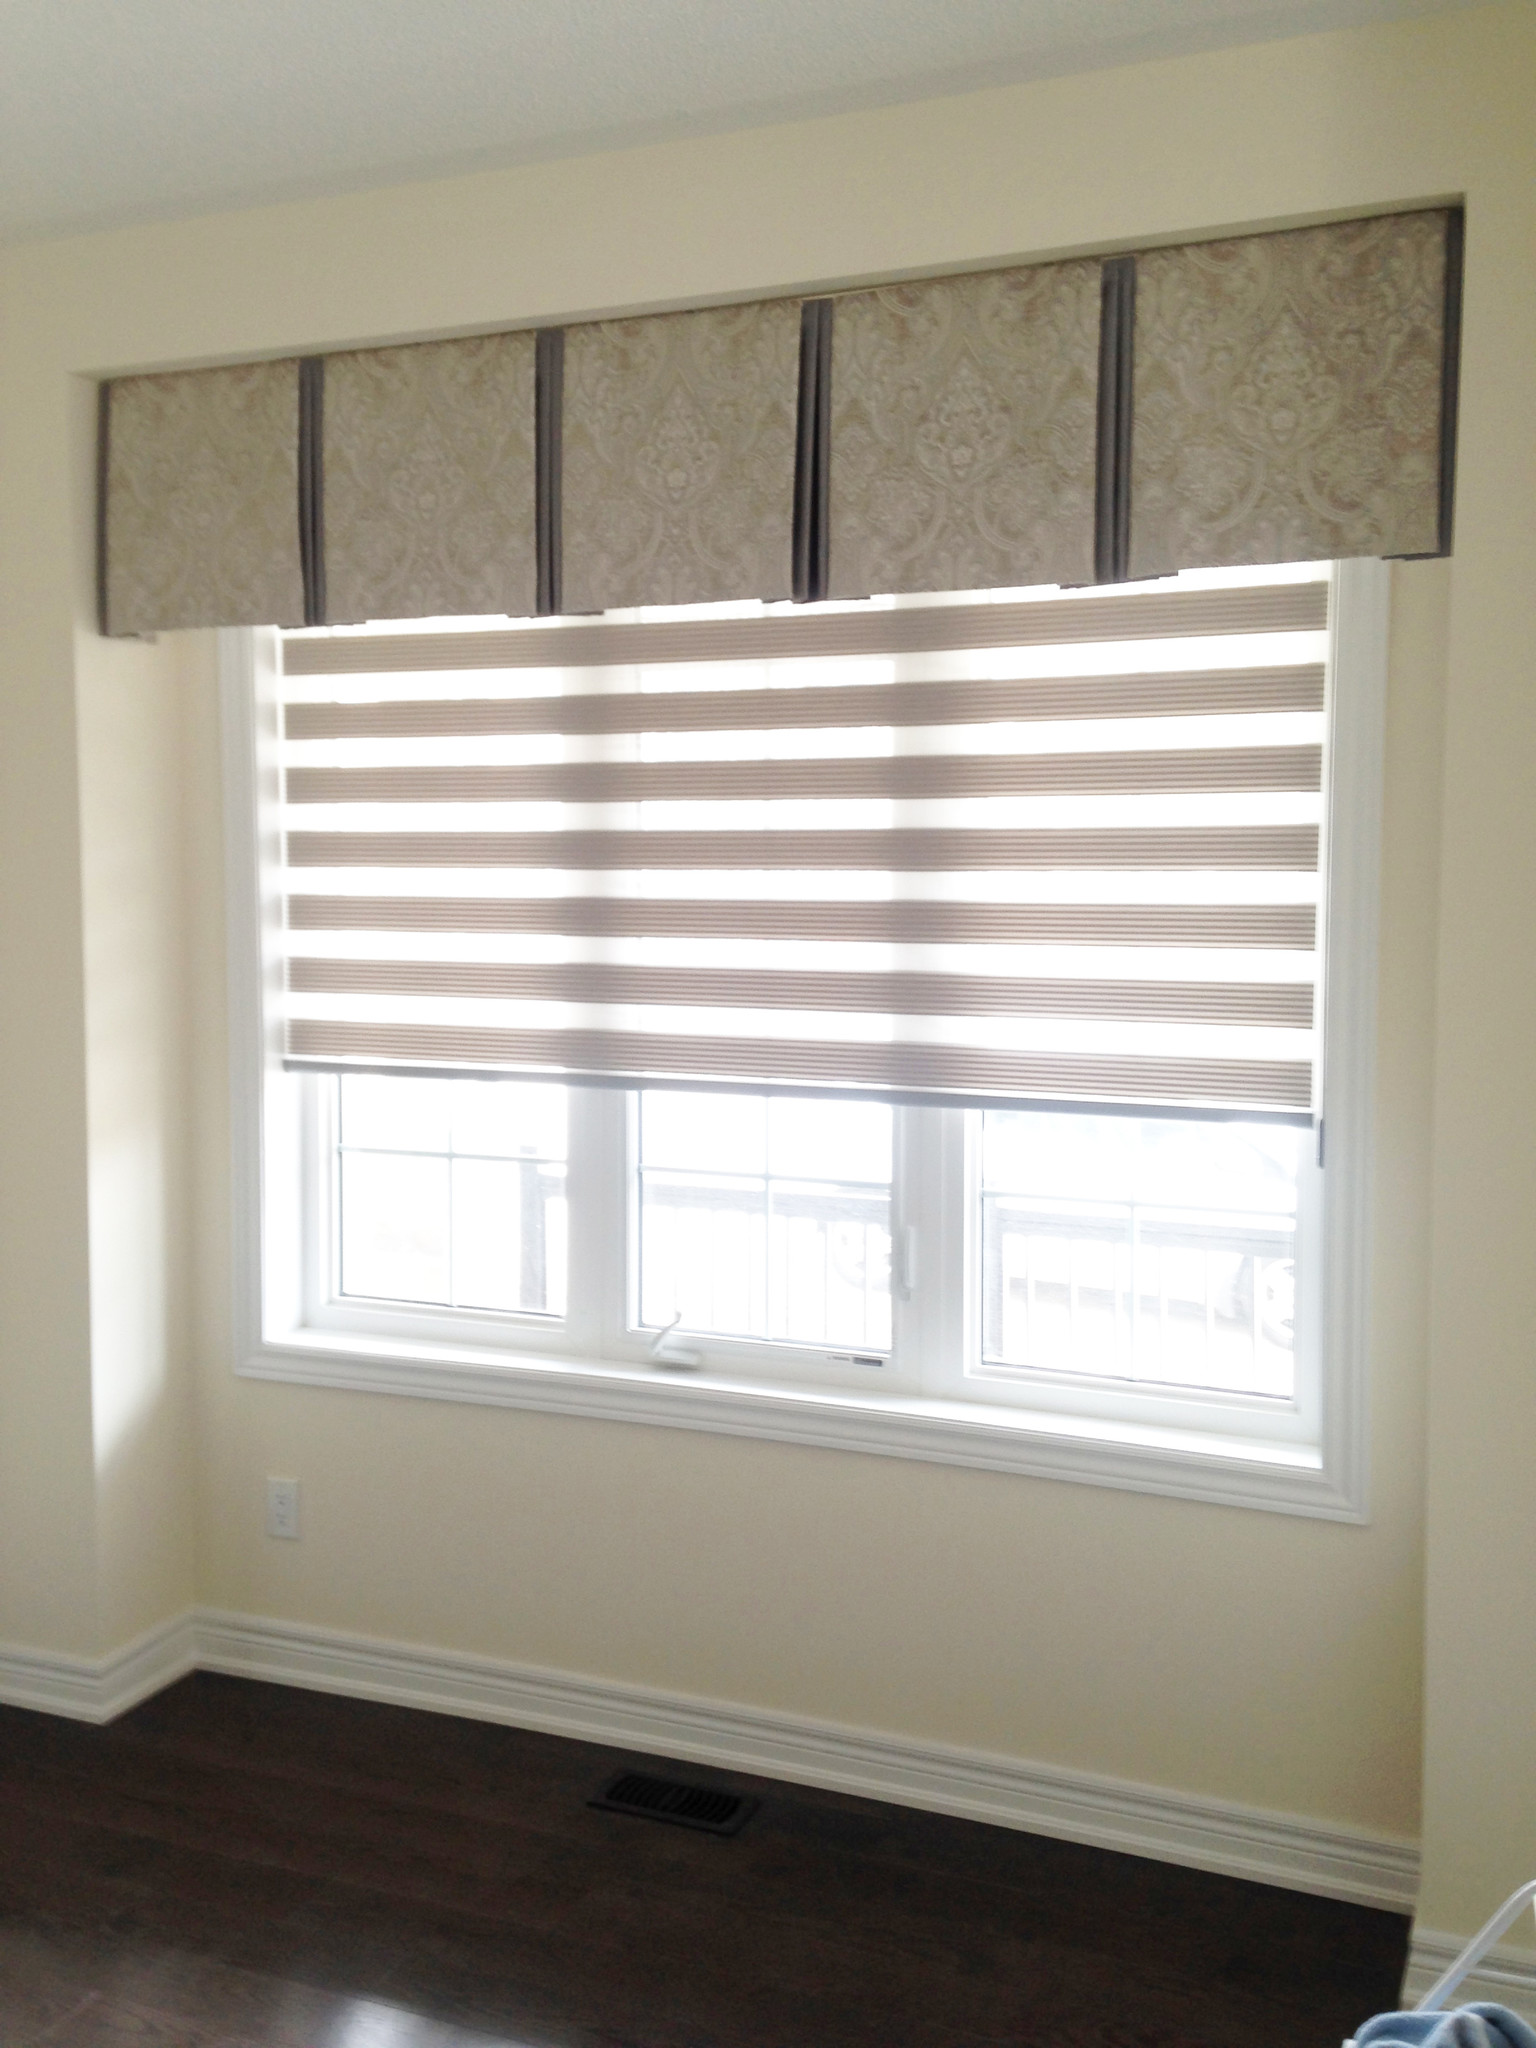 Double Pleat Box Valance Inside Mount